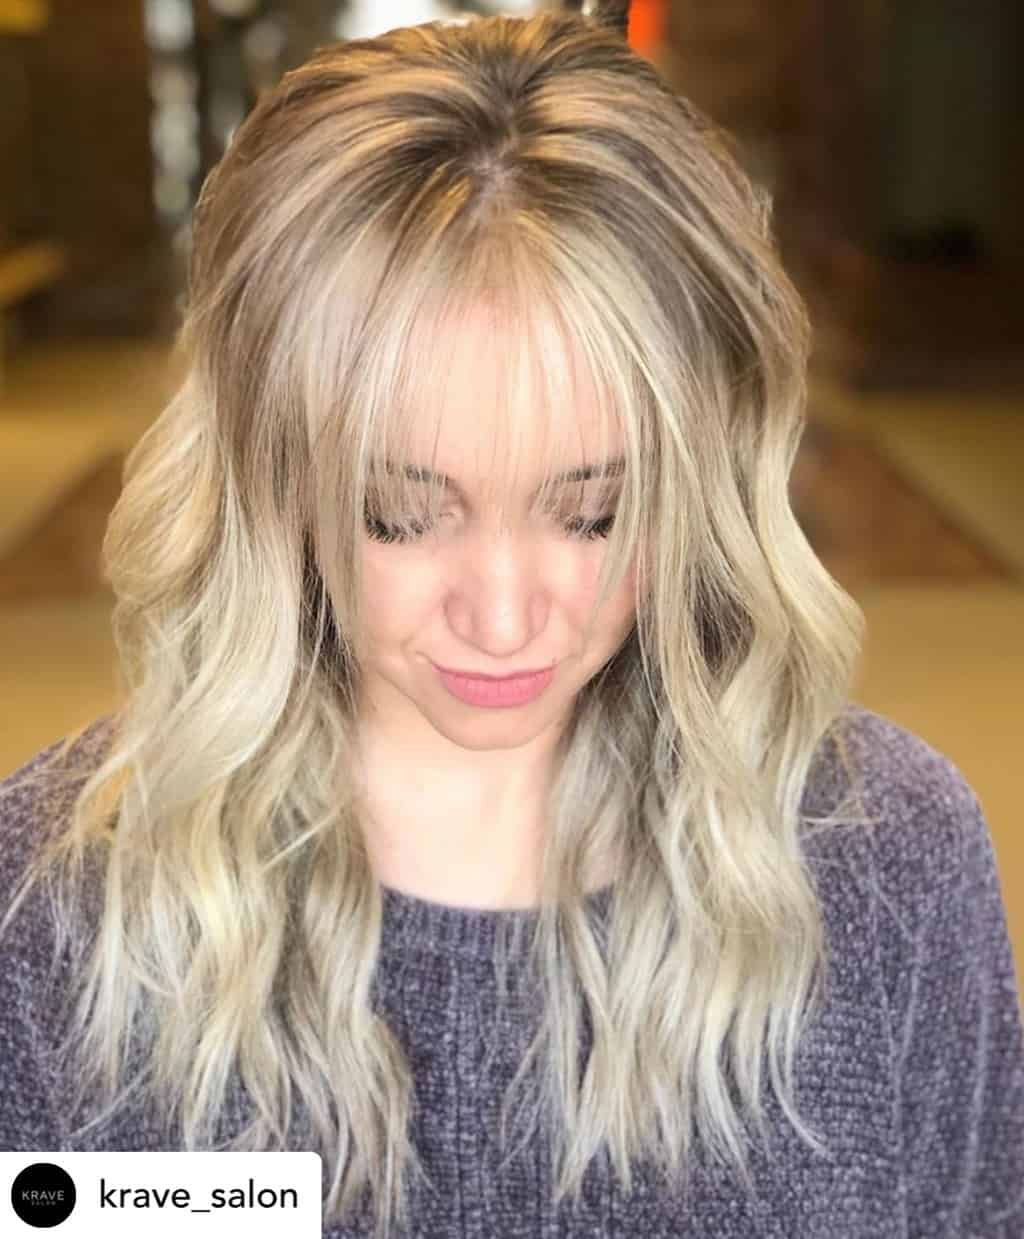 15 Different Types of Bangs You Should Try in 2020 in 2020 | Mid length hair  with bangs, Hair, Wispy bangs